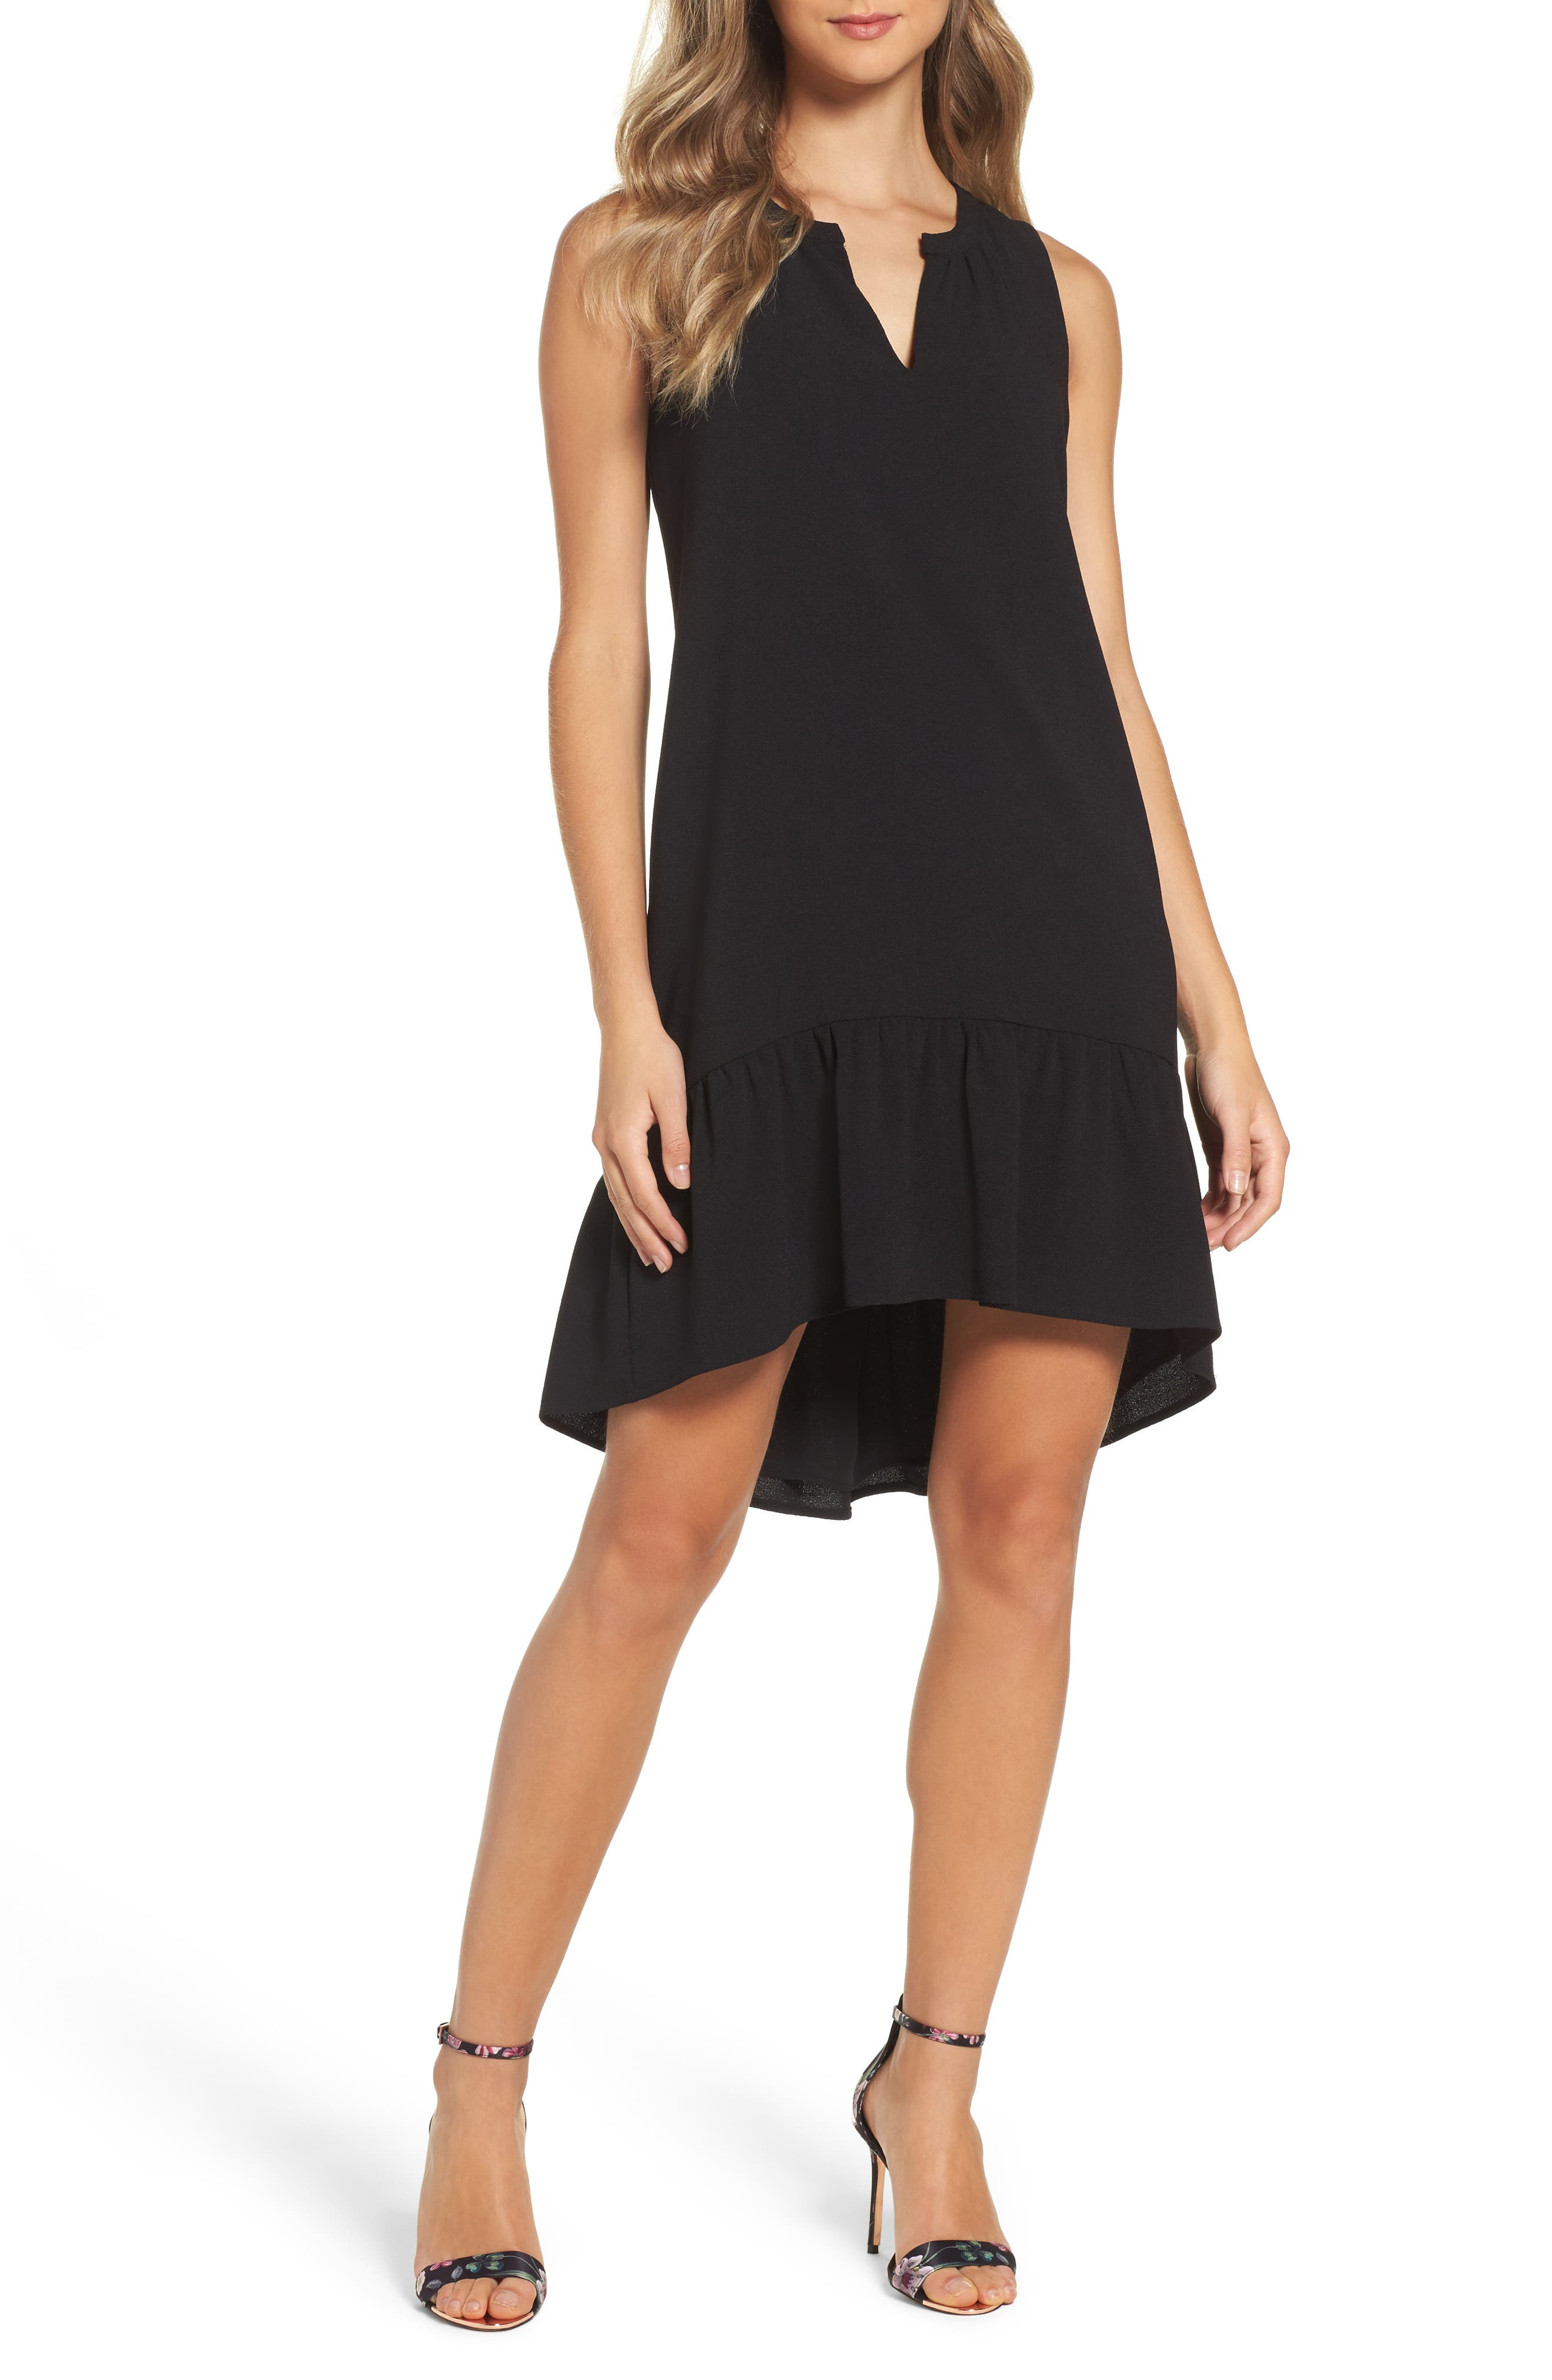 Women's & Teens' Little Black Dresses | Nordstrom